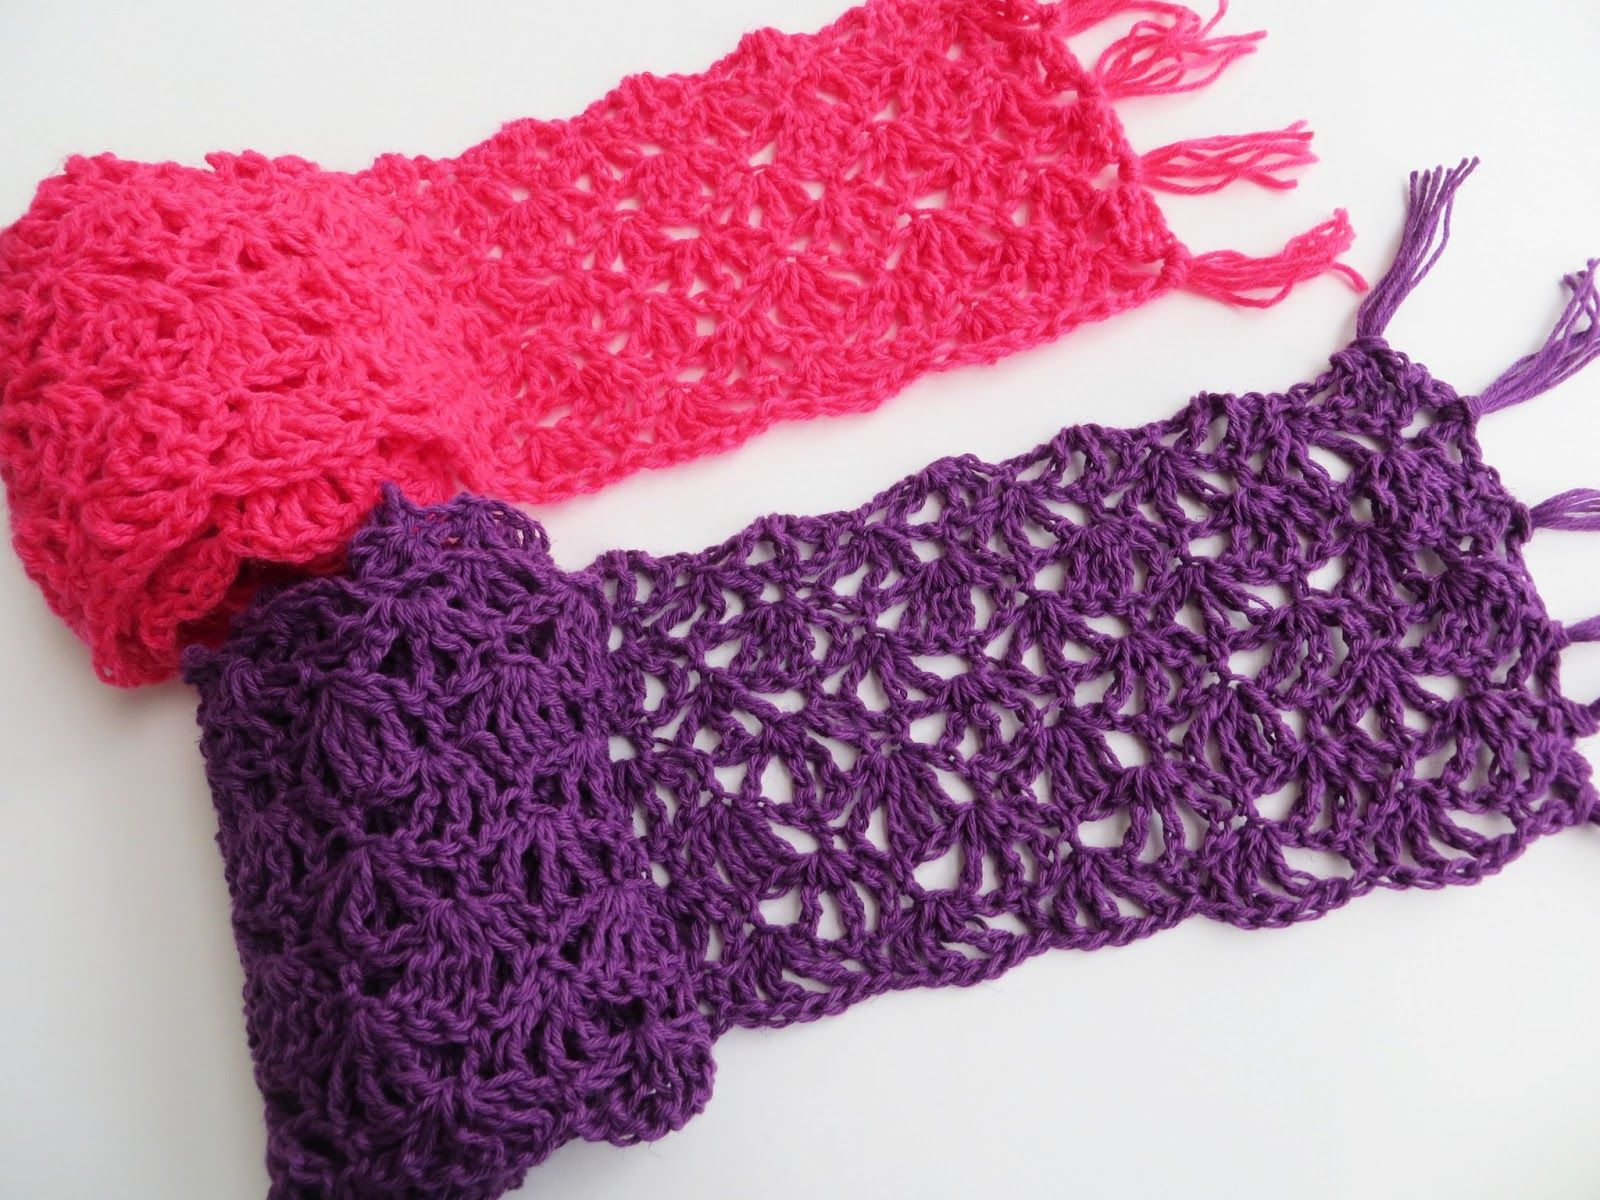 Alana lacy scarf free crochet pattern crochet scarf patterns alana lacy scarf free crochet pattern bankloansurffo Image collections